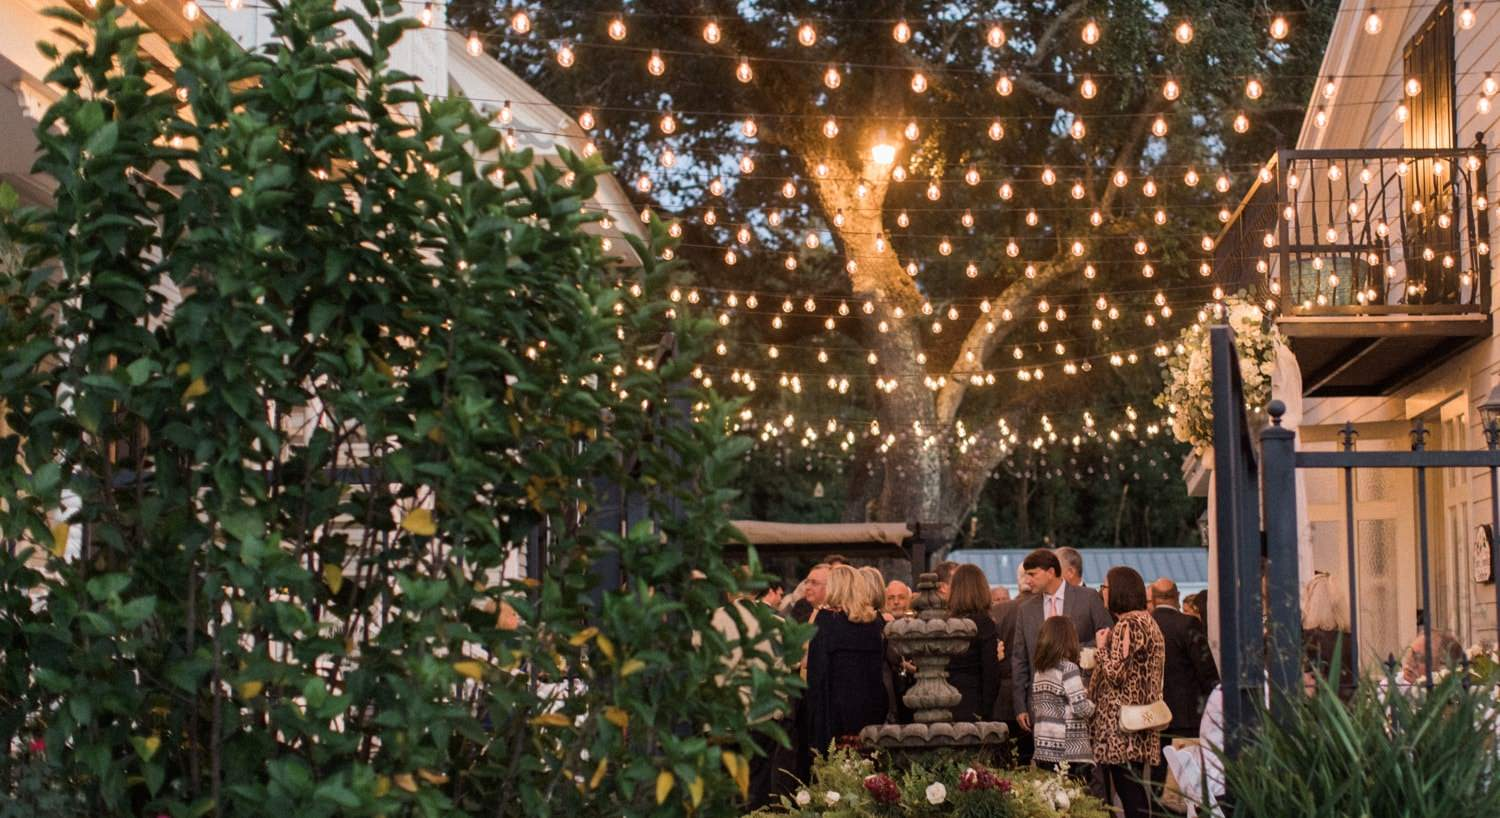 Wedding guests dining outside under rows of hanging twinkle lights